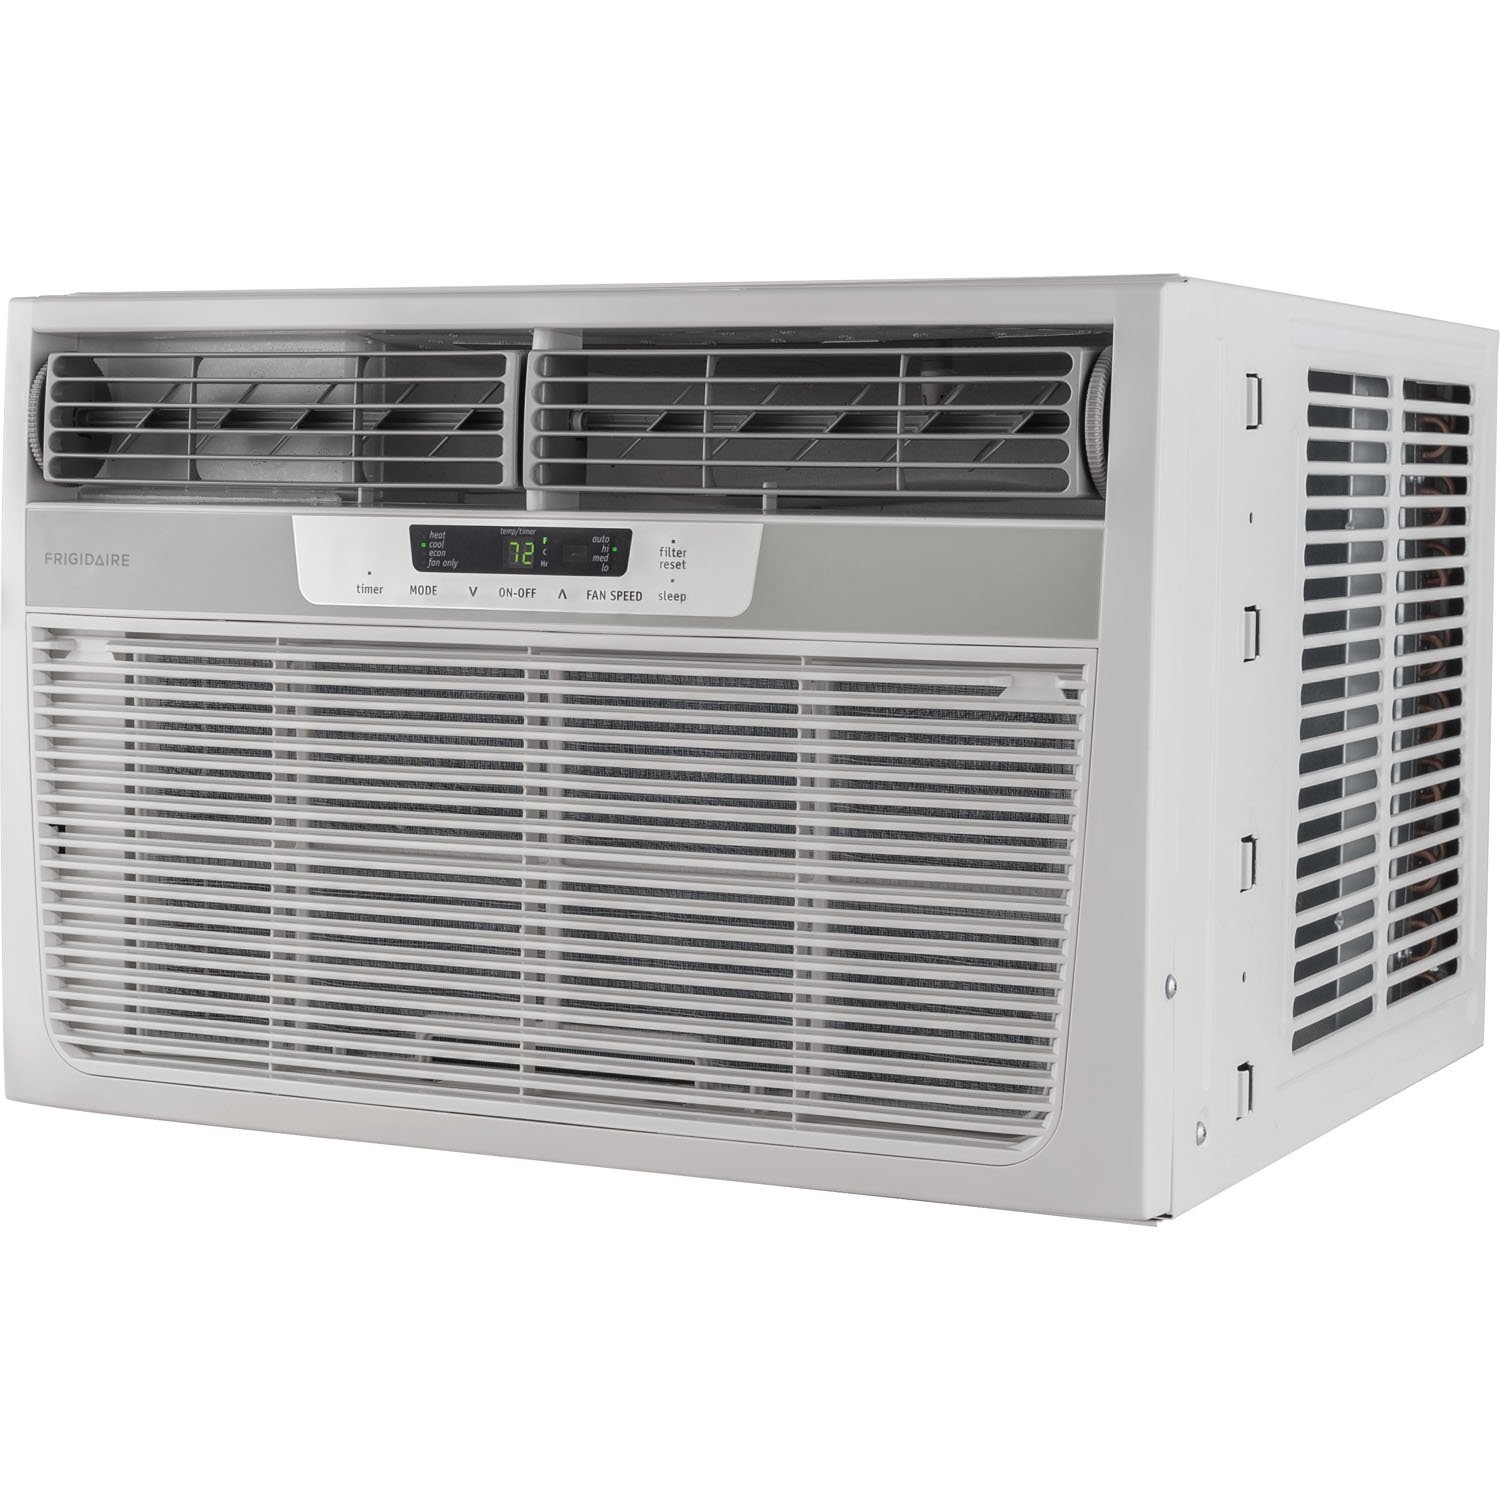 Frigidaire FFRH1222R2 12000 BTU 230-volt Compact Slide-Out Chassis Air Conditioner with 11000 BTU Supplemental Heat Capability by Frigidaire (Image #7)